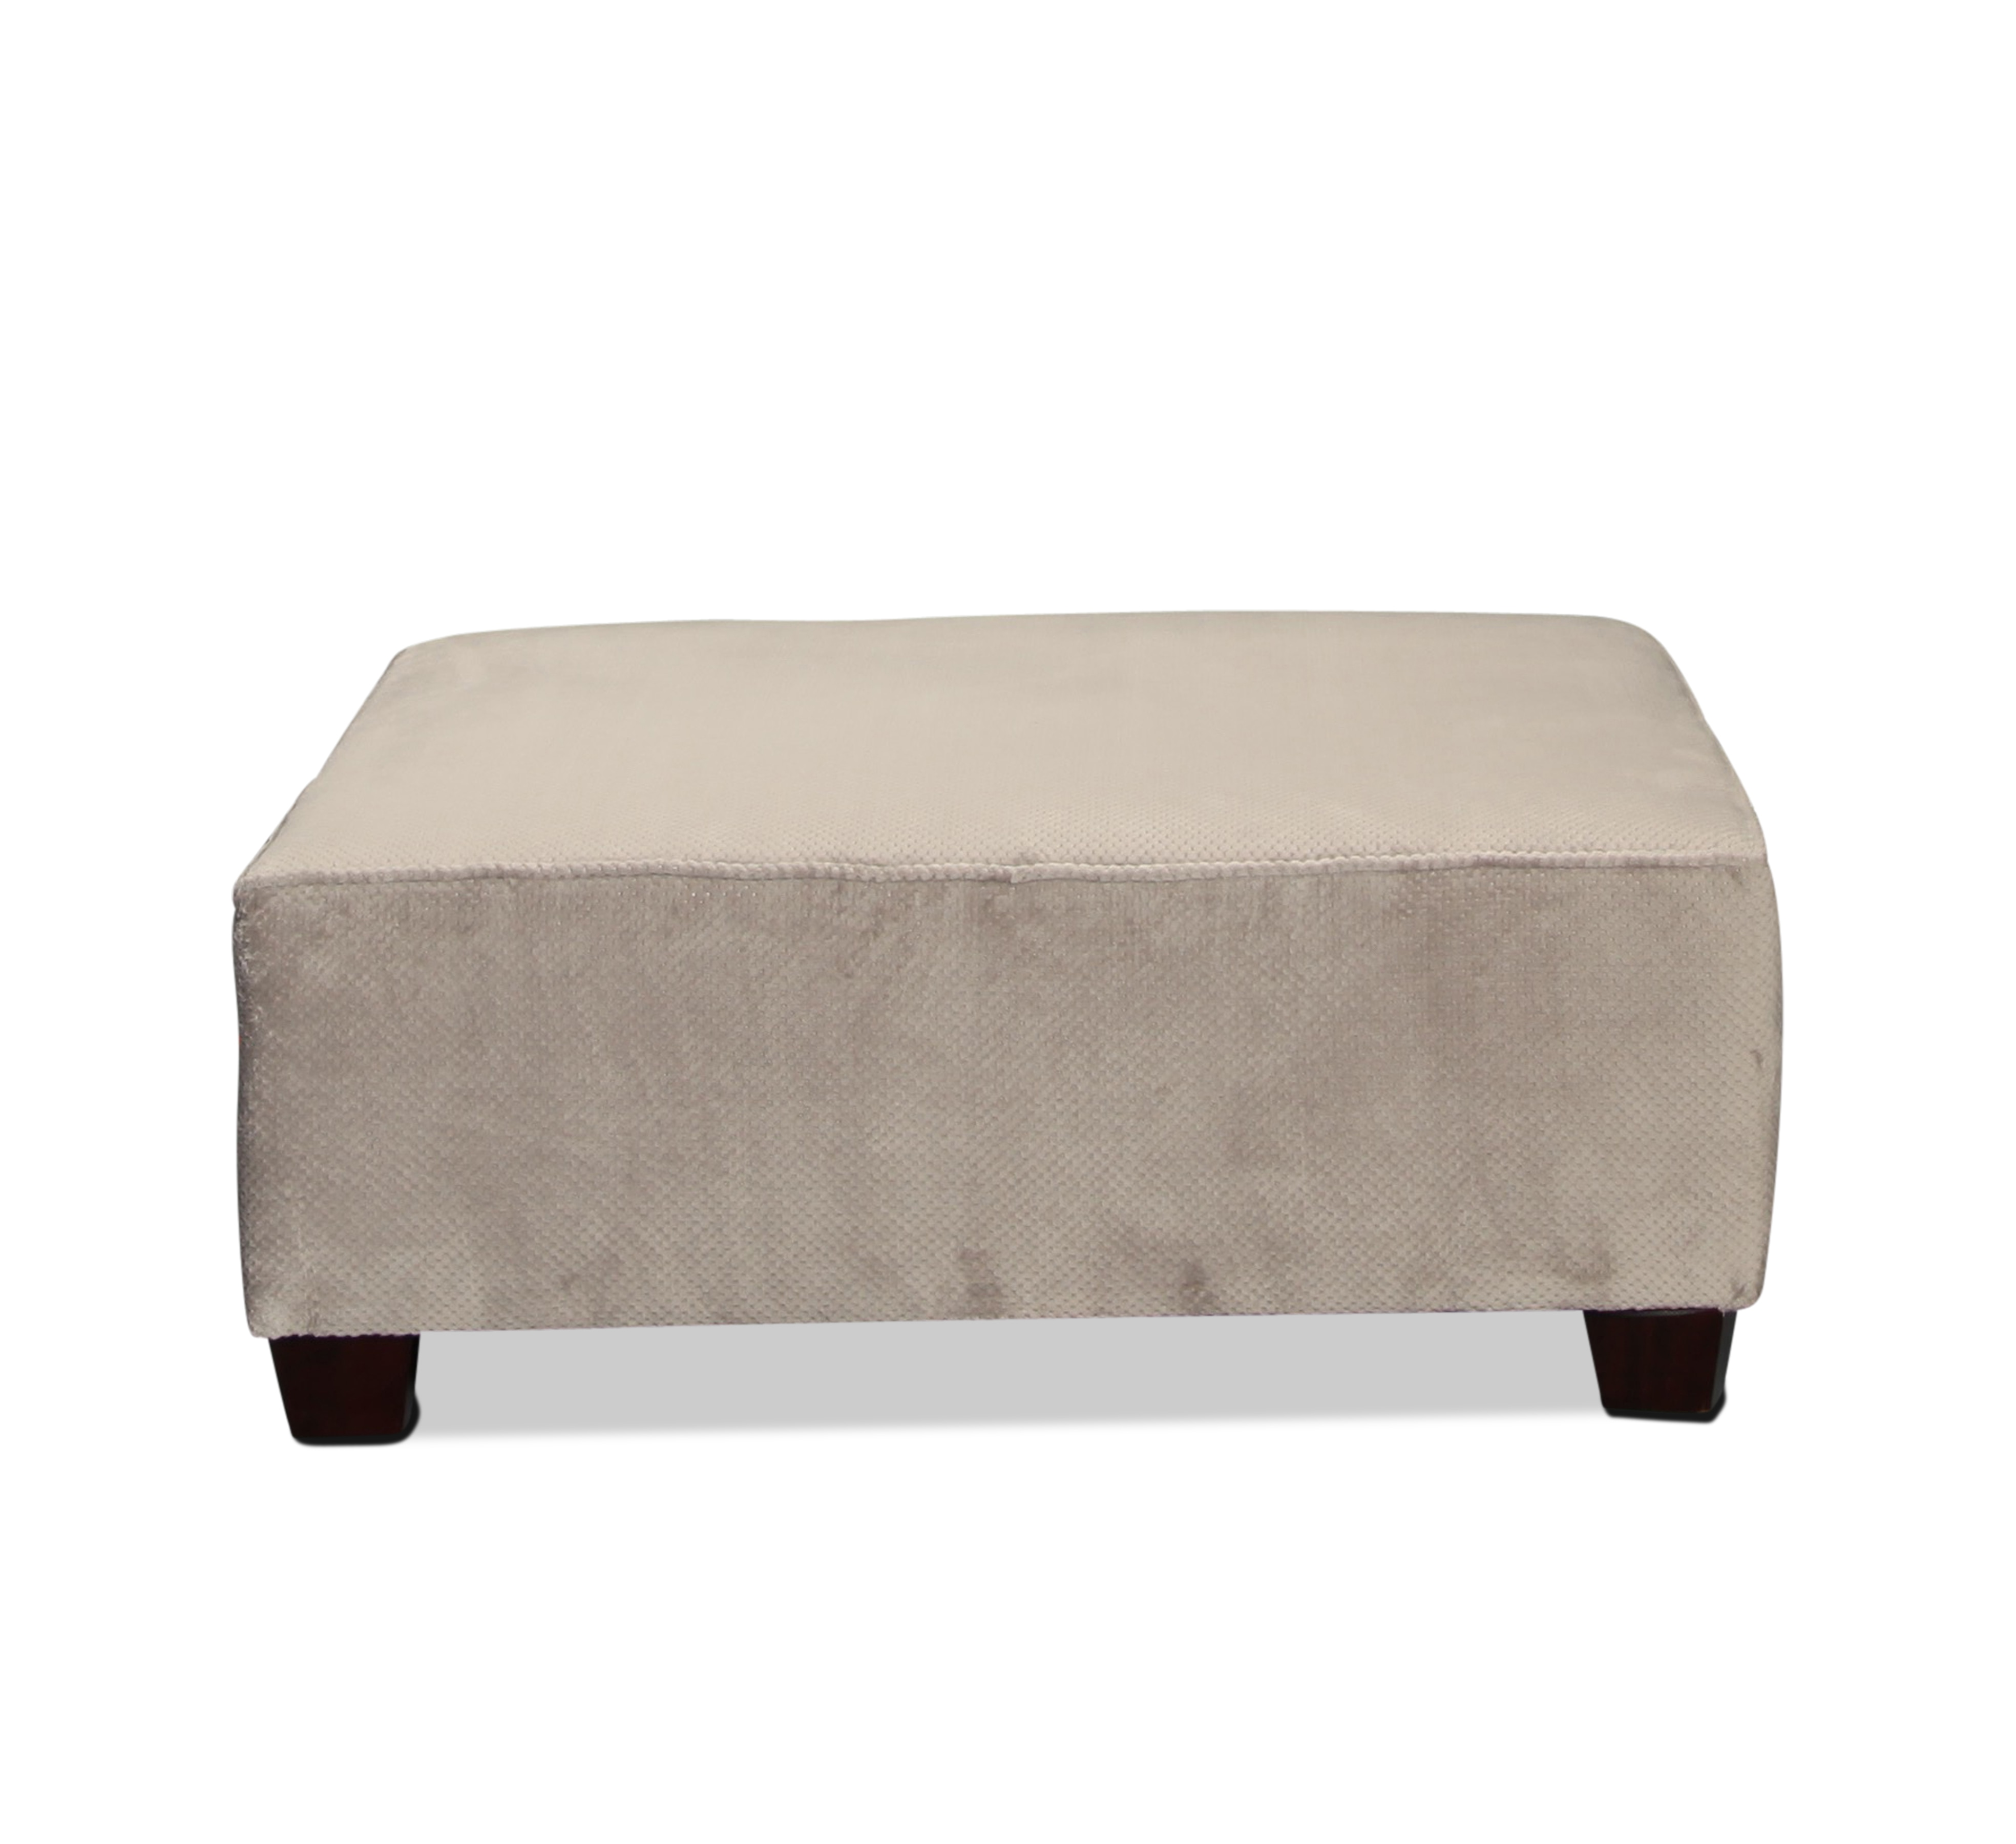 Living Room Furniture - Serendipity Accent Ottoman